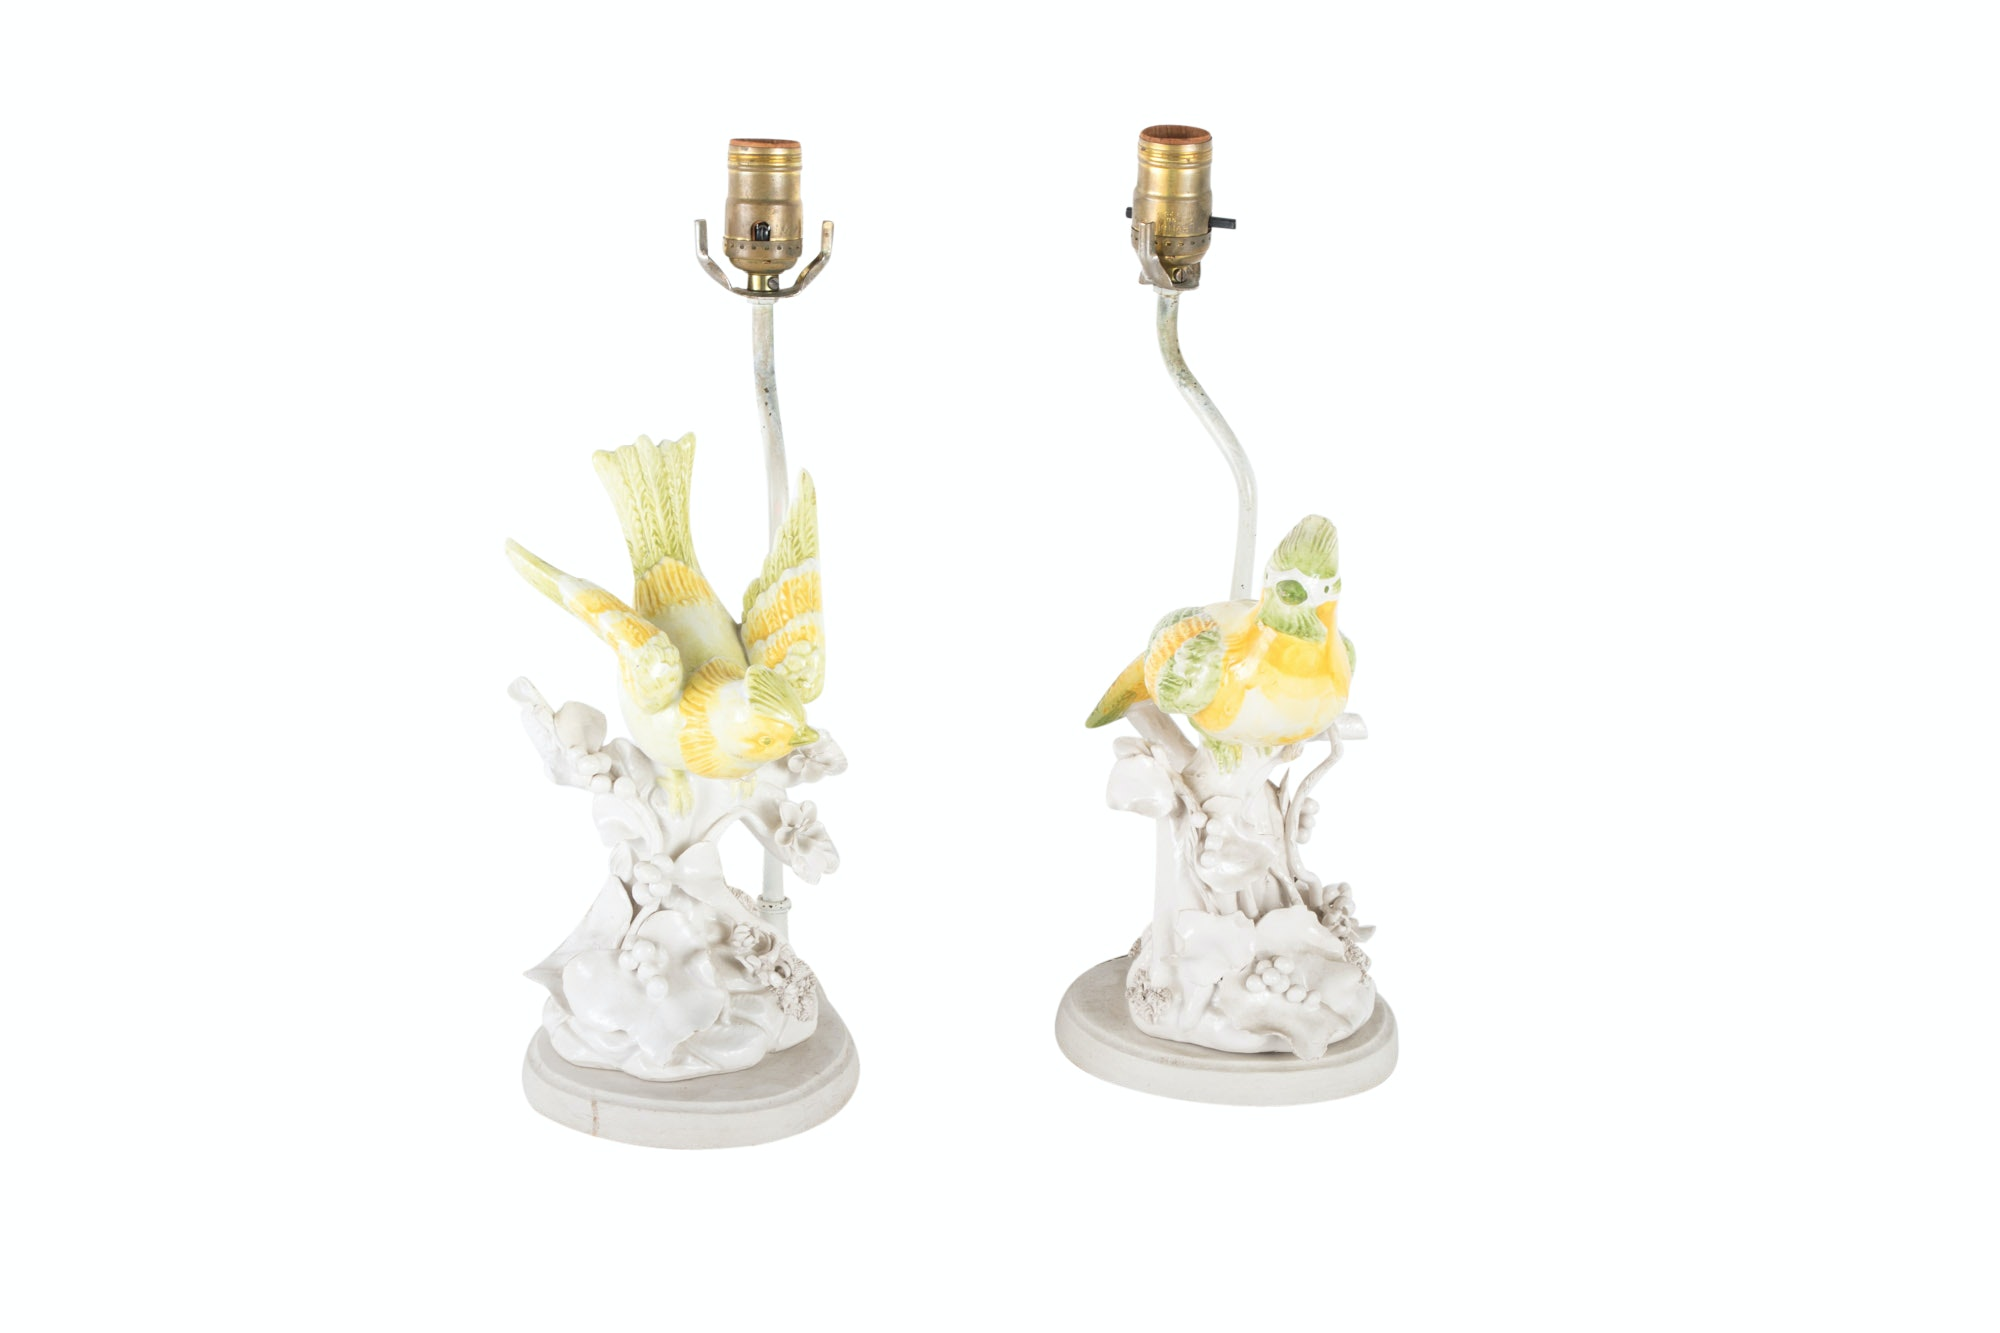 Pair of Porcelain Bird Figurines Mounted as Table Lamps, 20th Century